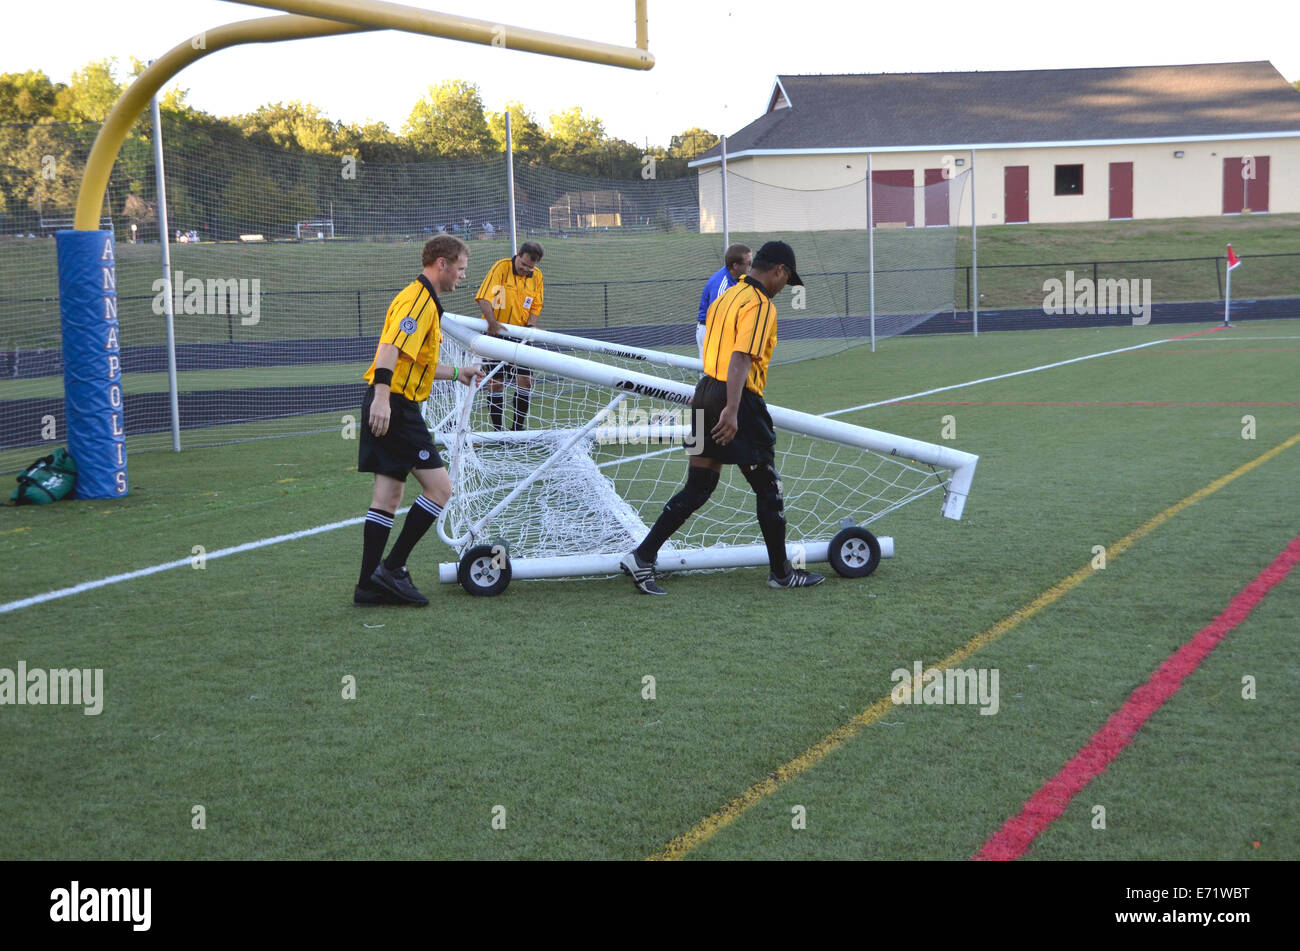 Soccer referees remove a broken goal netting at a high school soccer game - Stock Image